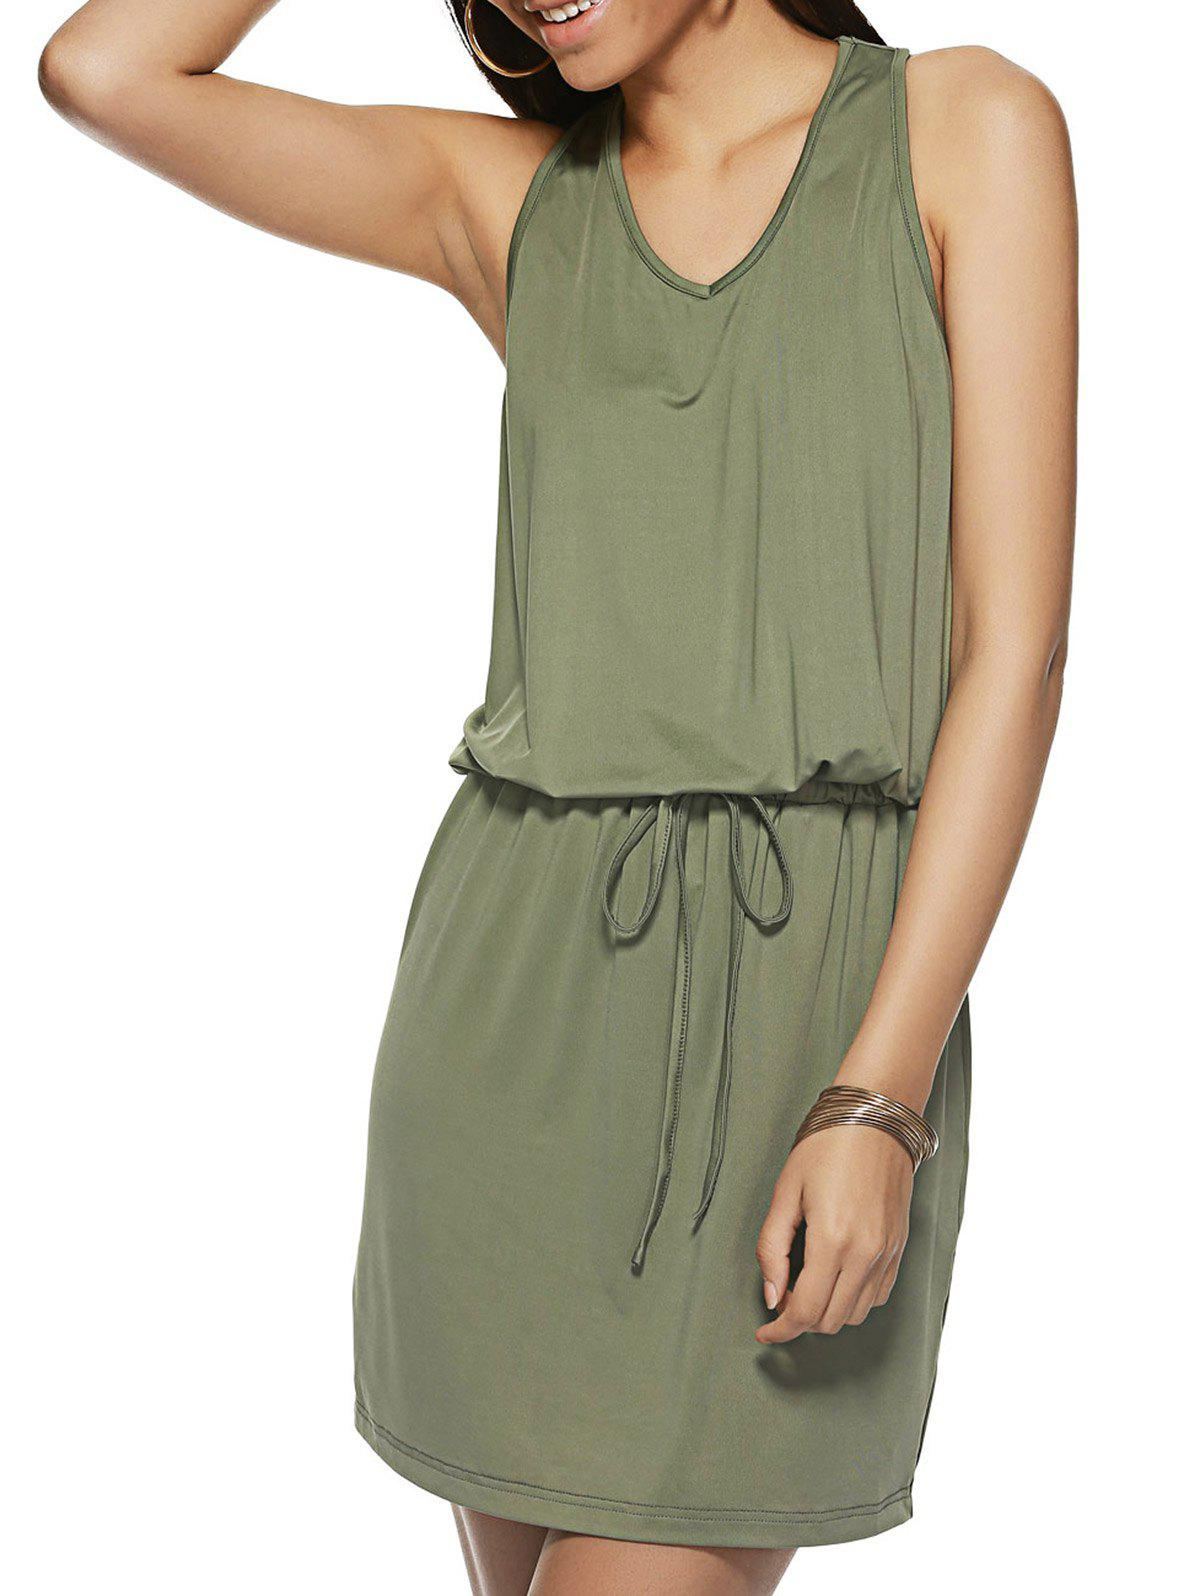 Lace-Up Pure Color Sleeveless Dress - ARMY GREEN L